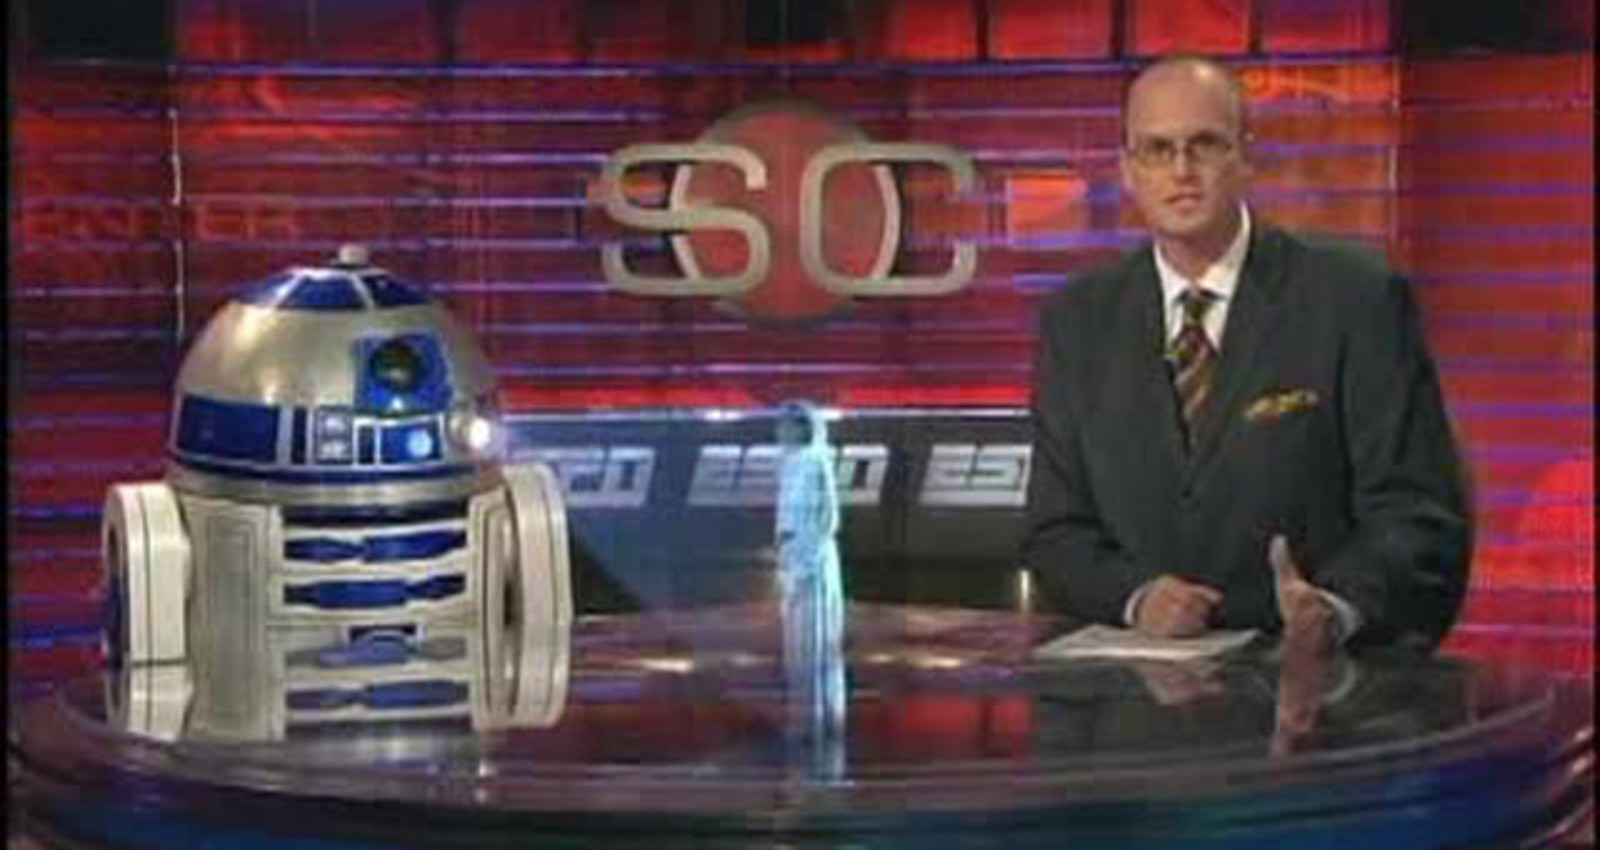 This Is SportsCenter - Space Anchors